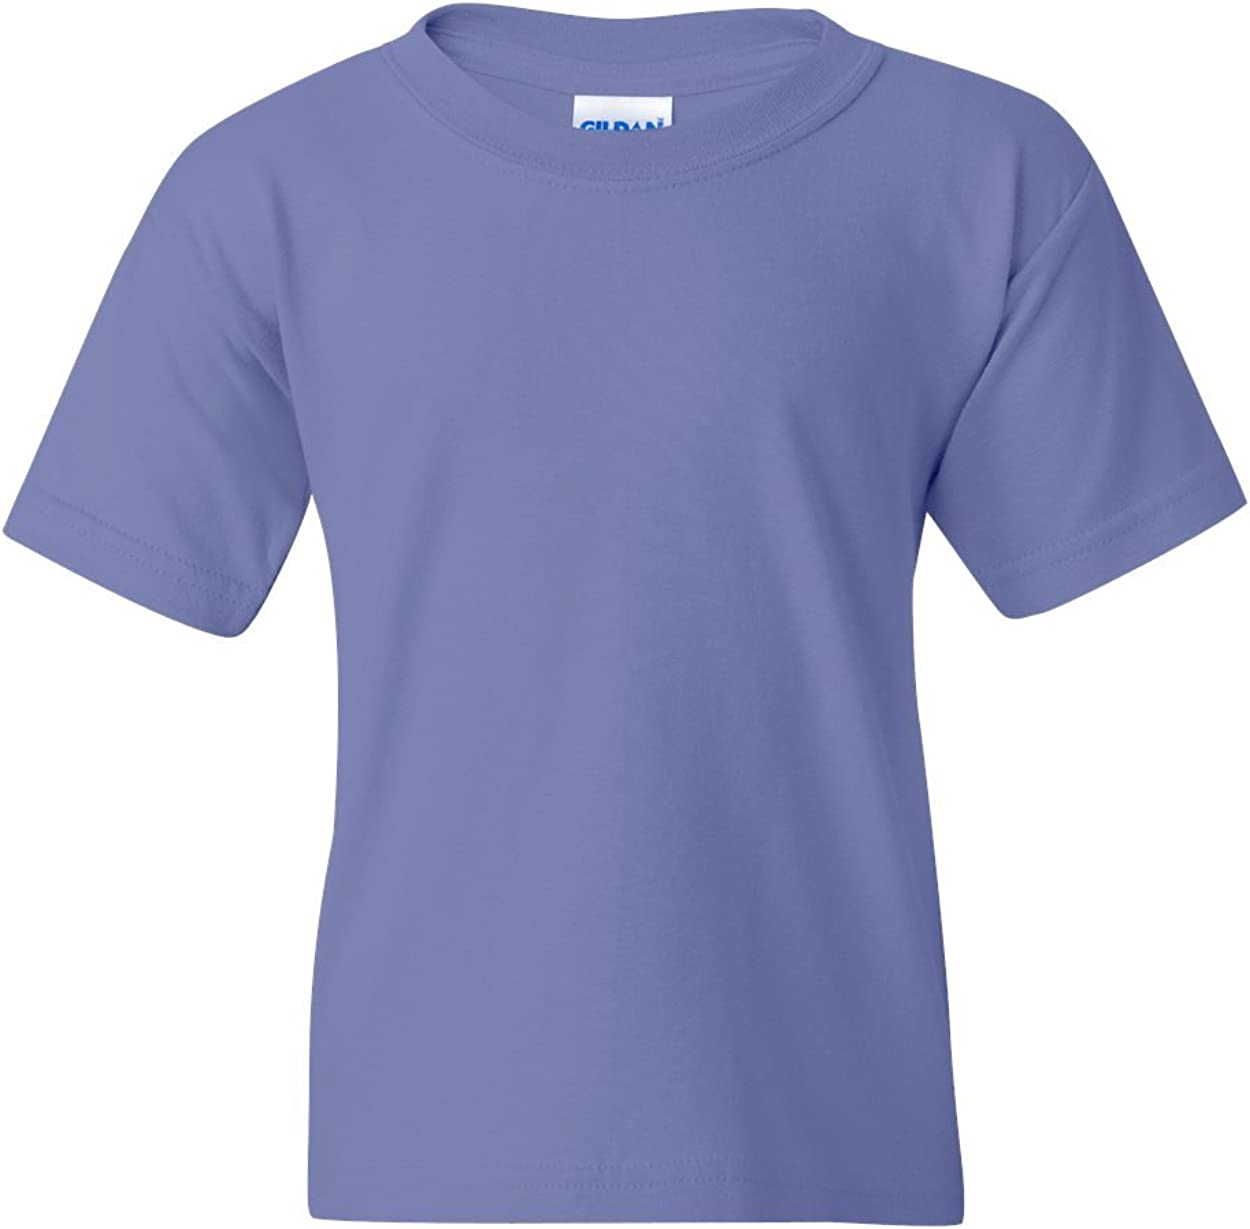 Heavy Cotton T-Shirt (G500B) Violet, S (Pack of 12)